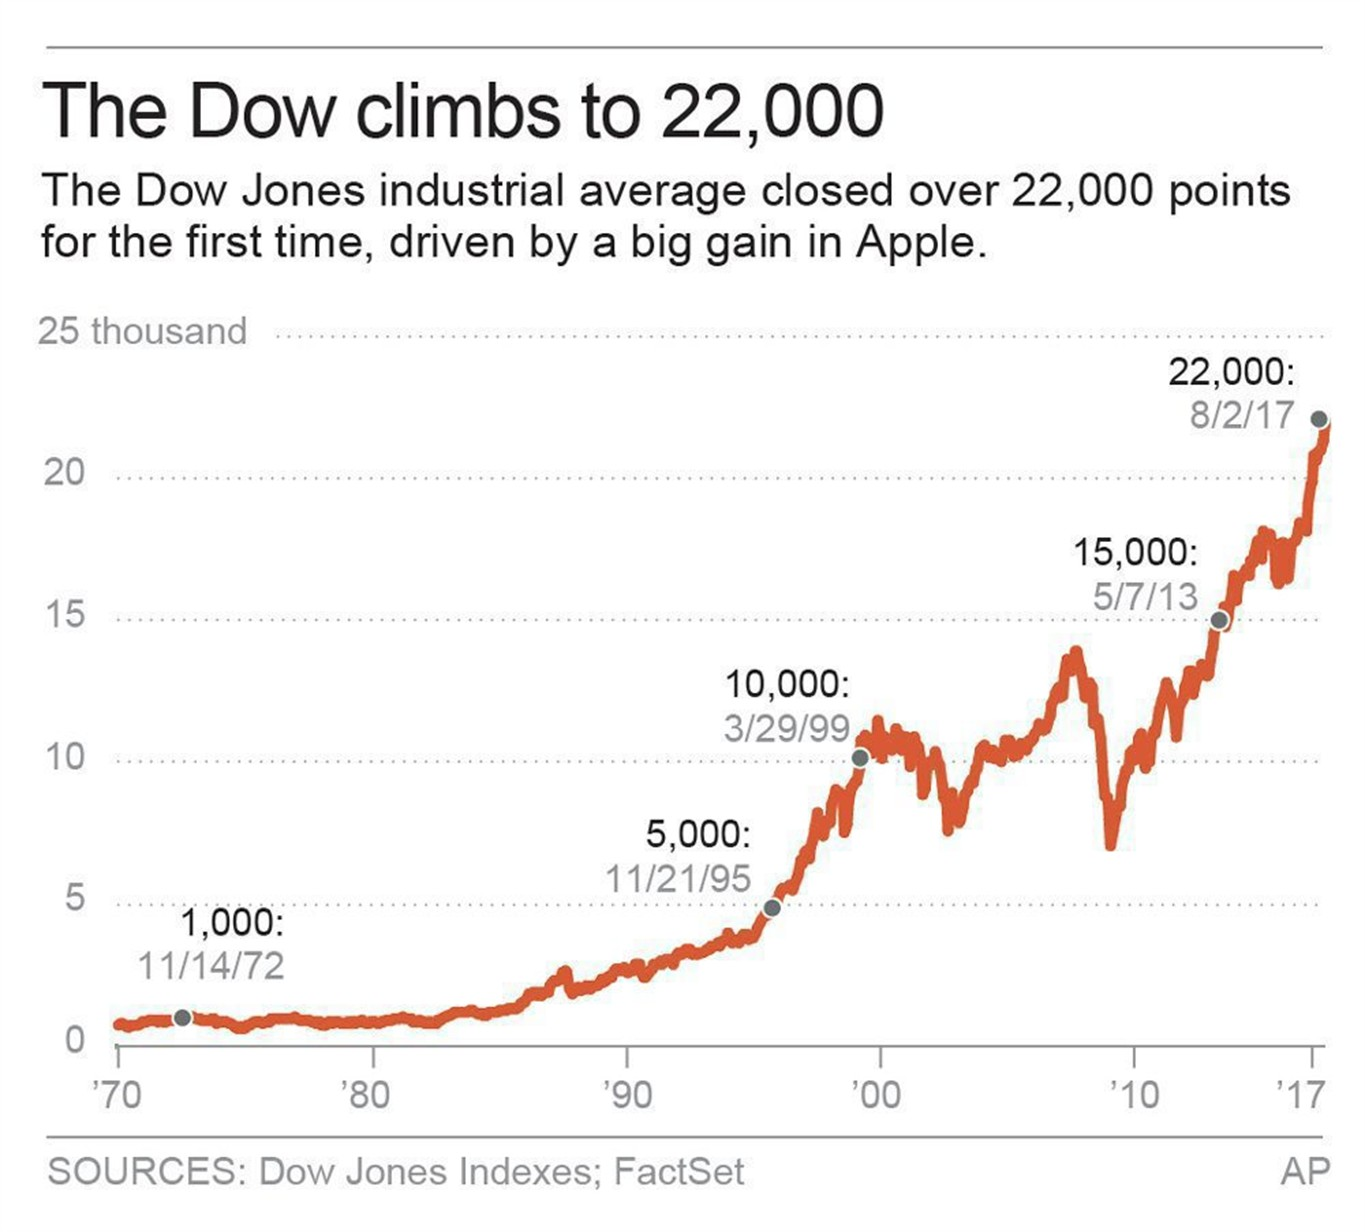 Dow bull session what does 22000 points mean anyway 1310 news dow bull session what does 22000 points mean anyway biocorpaavc